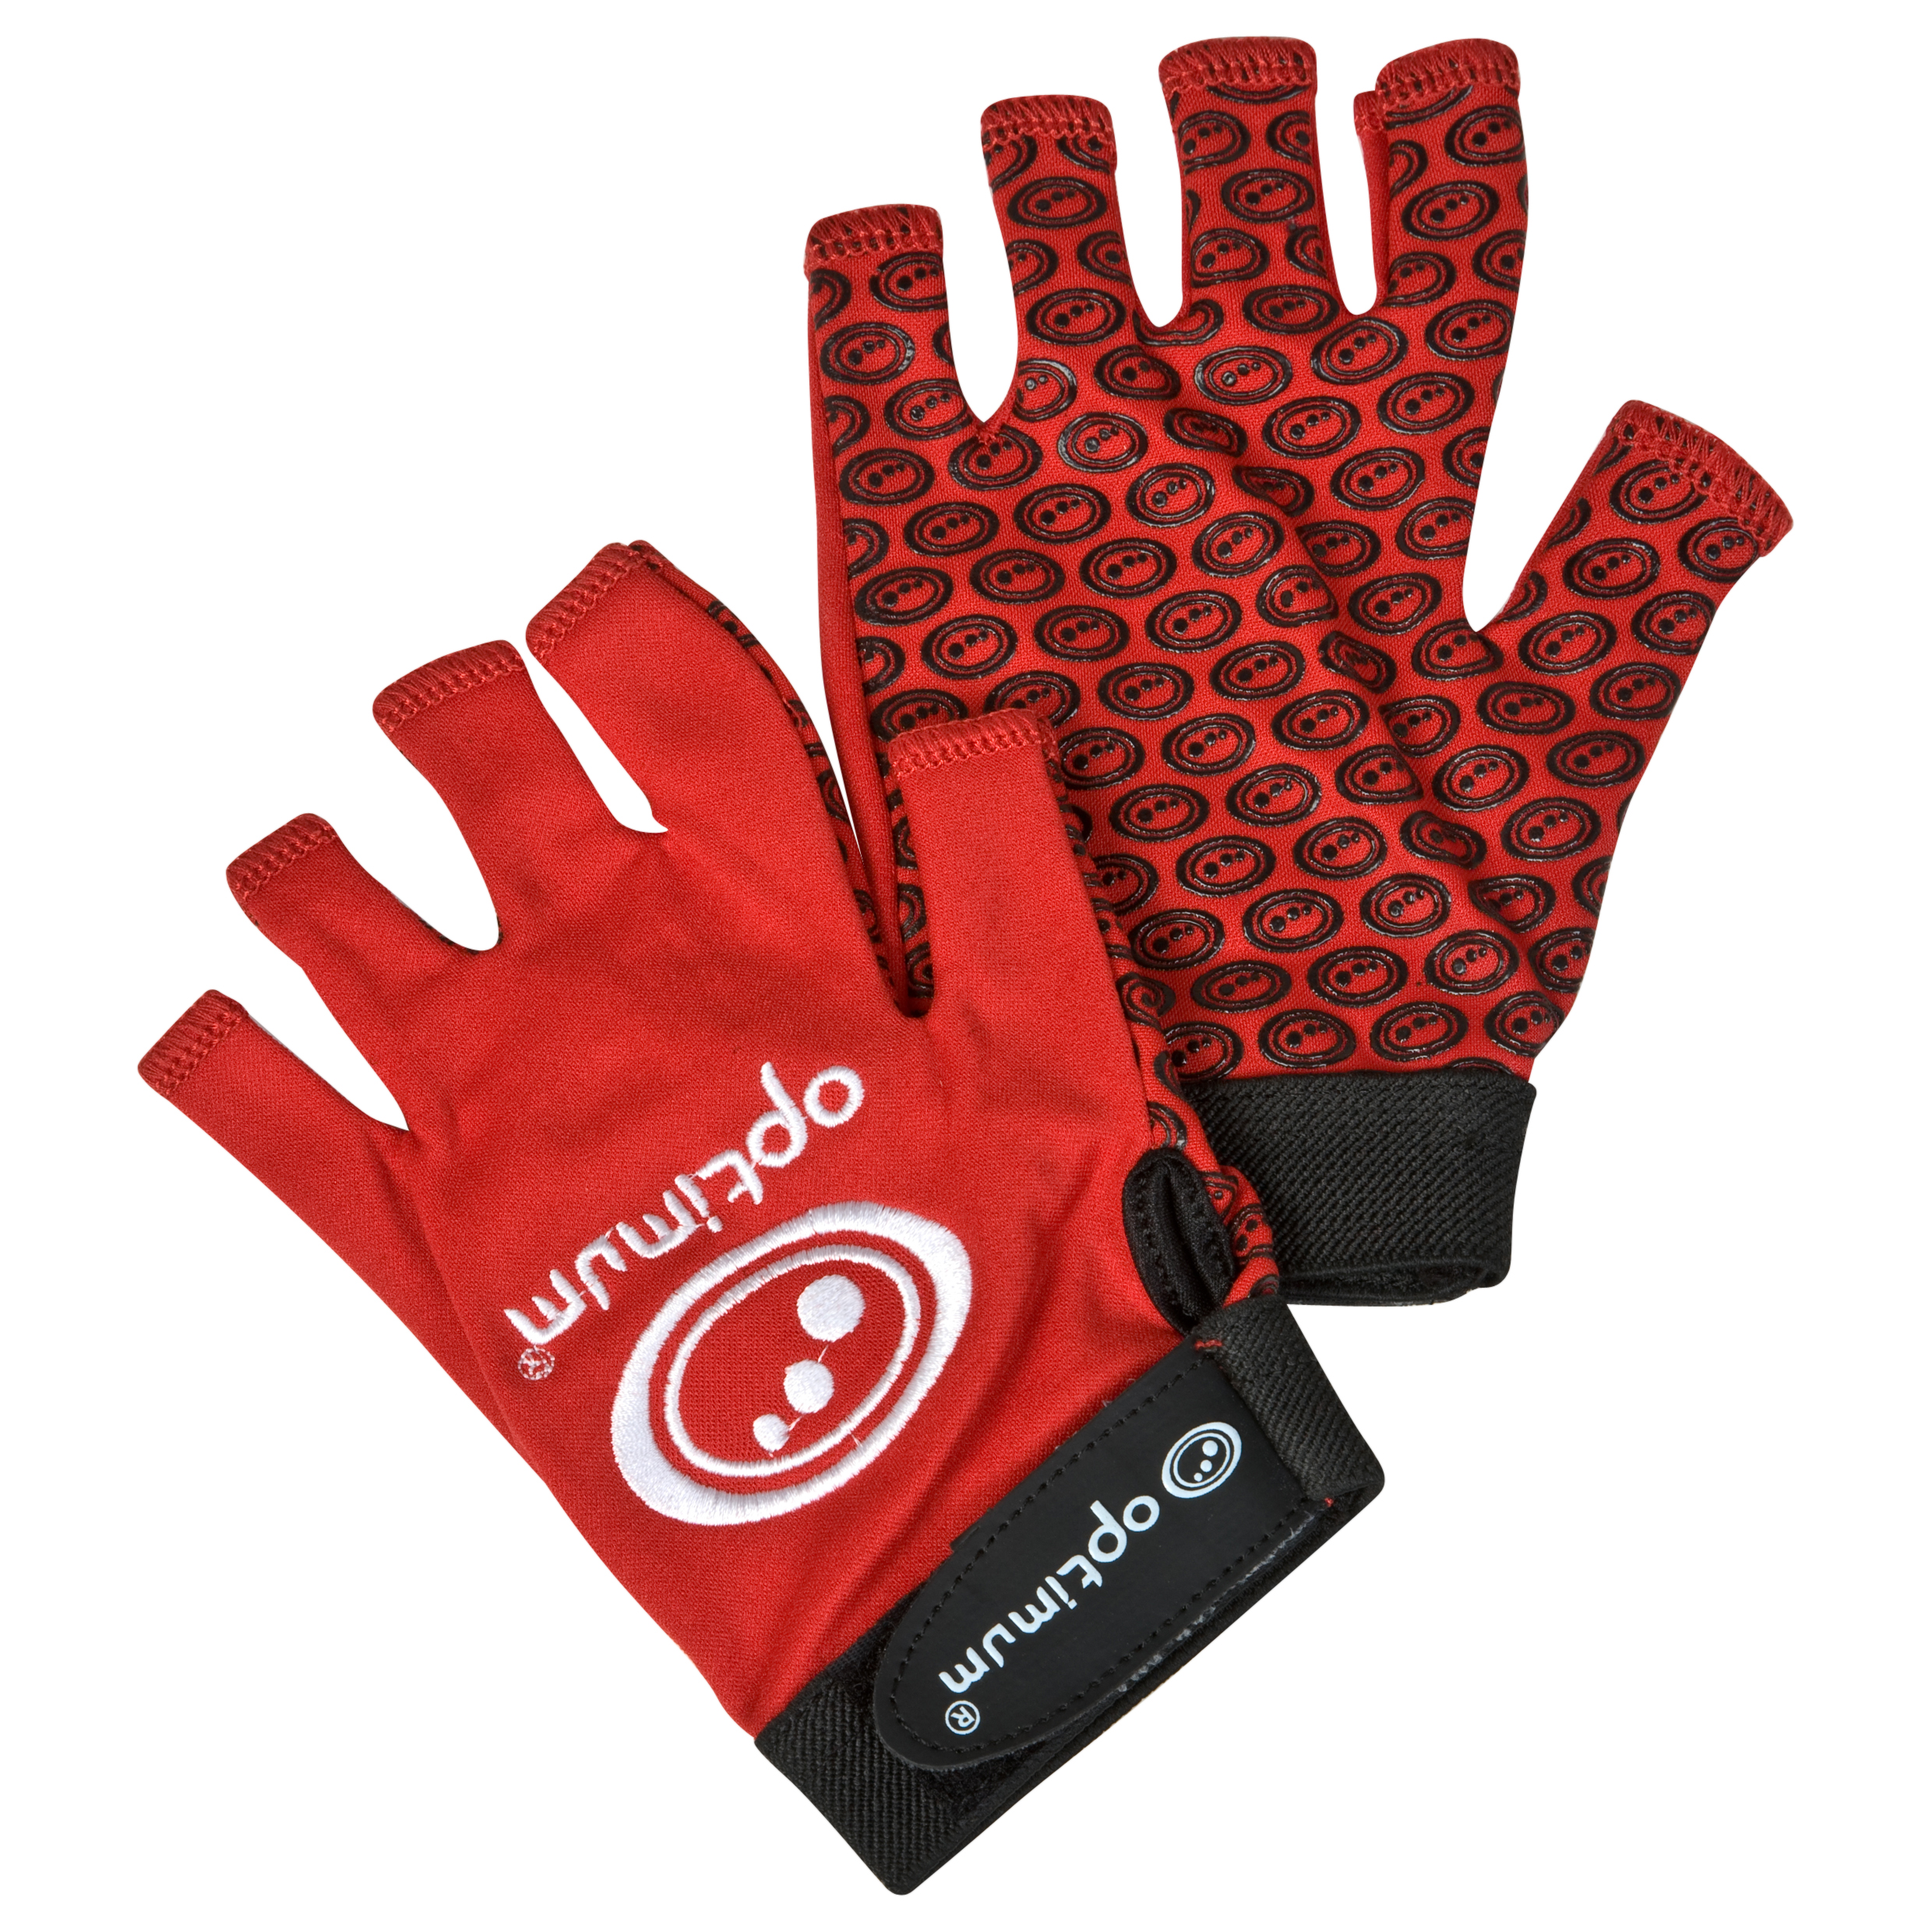 Optimum Stick Mitts - Red